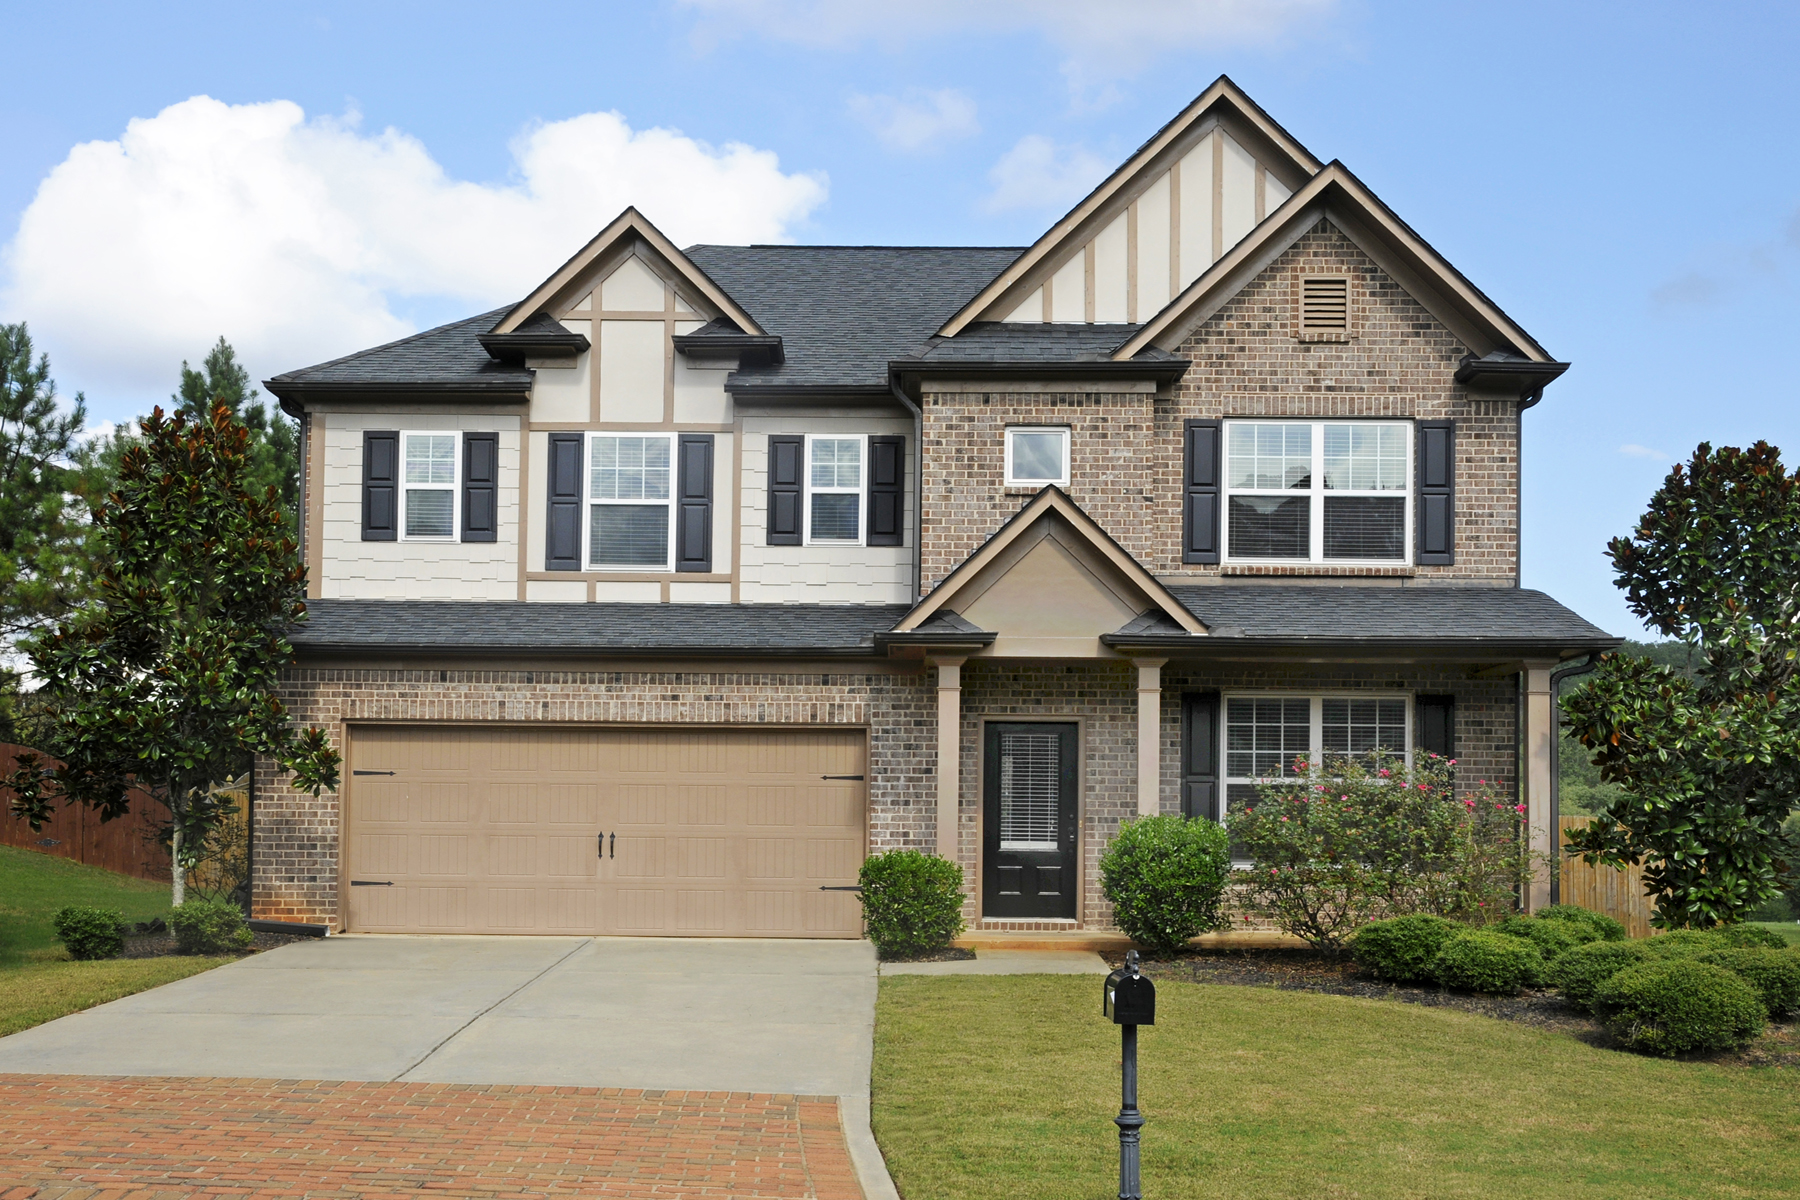 Single Family Home for Sale at Move In Ready 4935 Silver Leaf Dr Cumming, Georgia 30040 United States